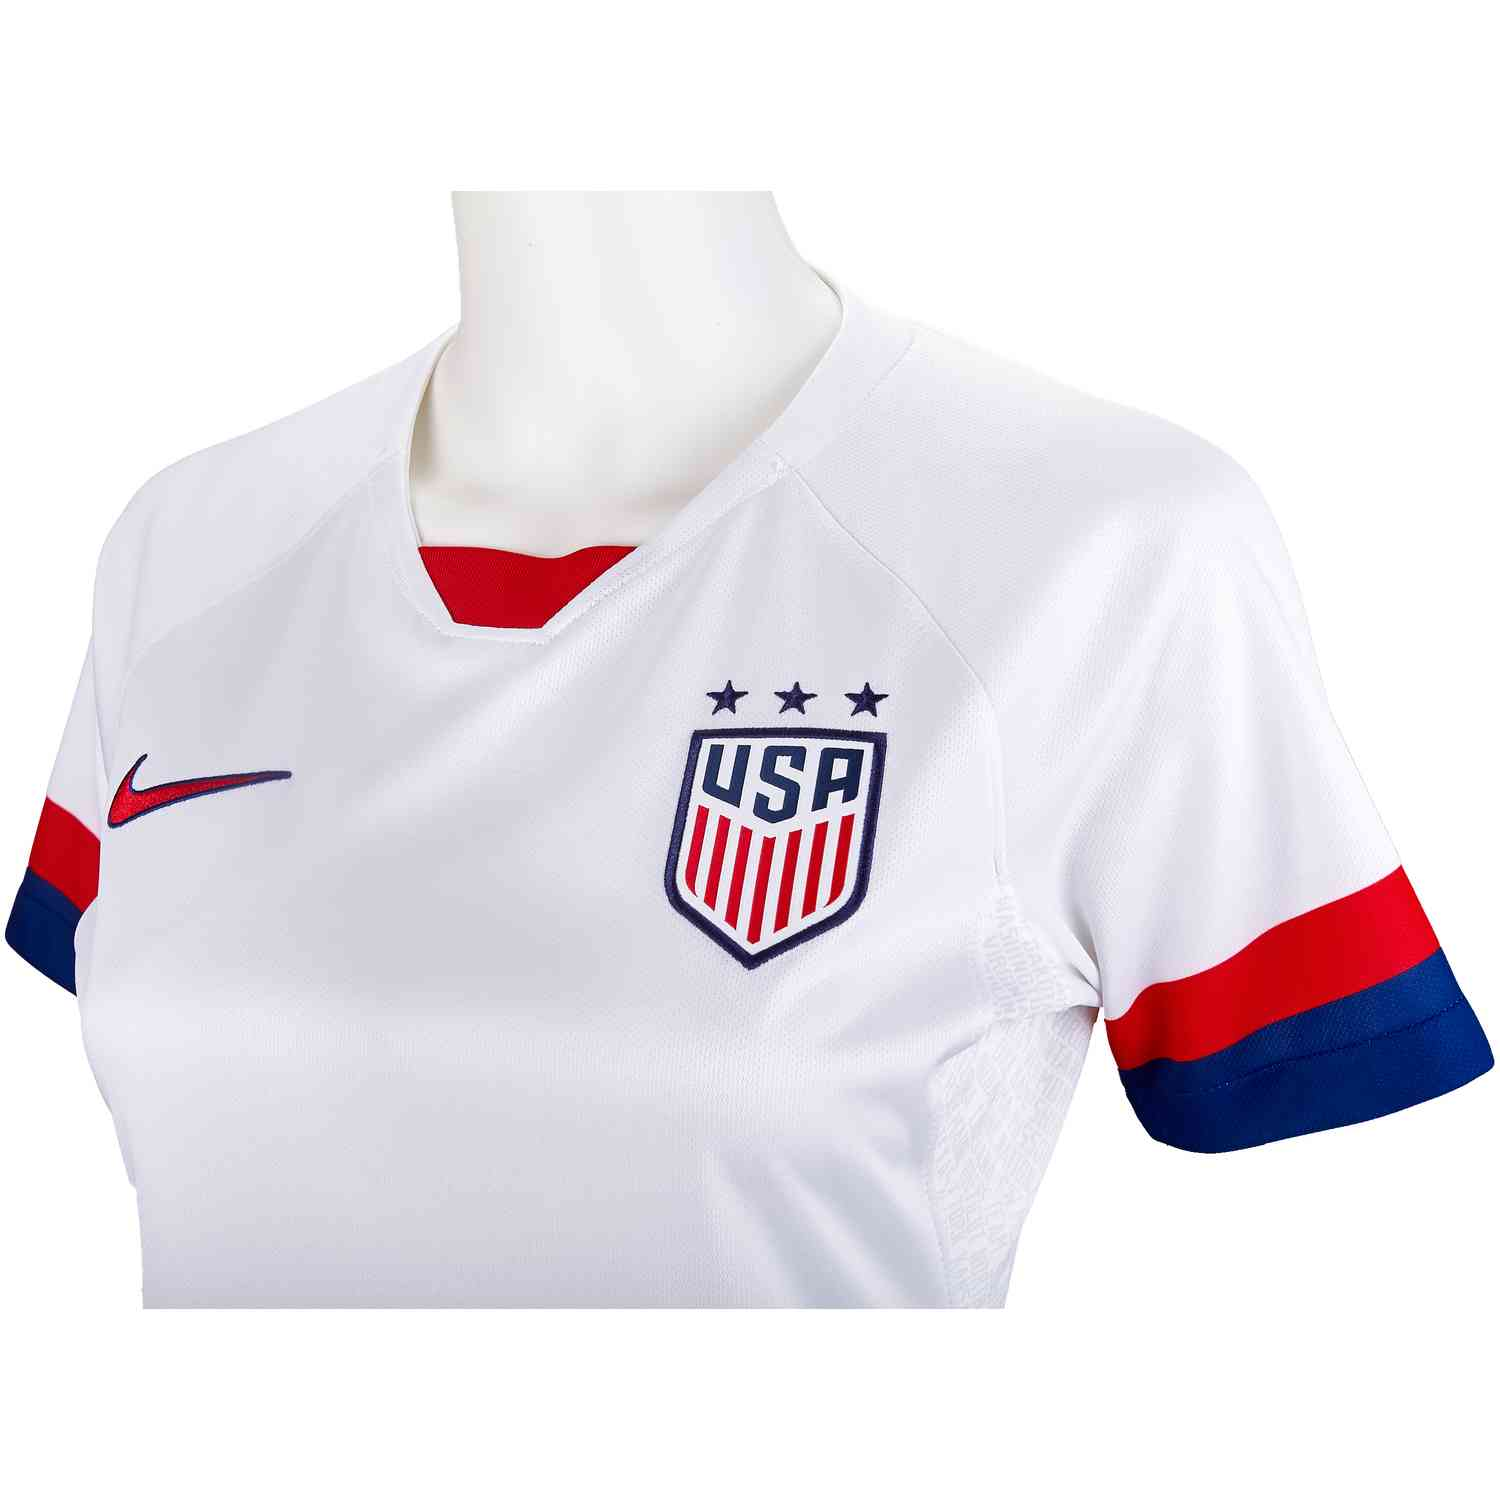 size 40 dbe18 76db7 2019 Womens Tobin Heath USWNT Home Jersey - Soccer Master